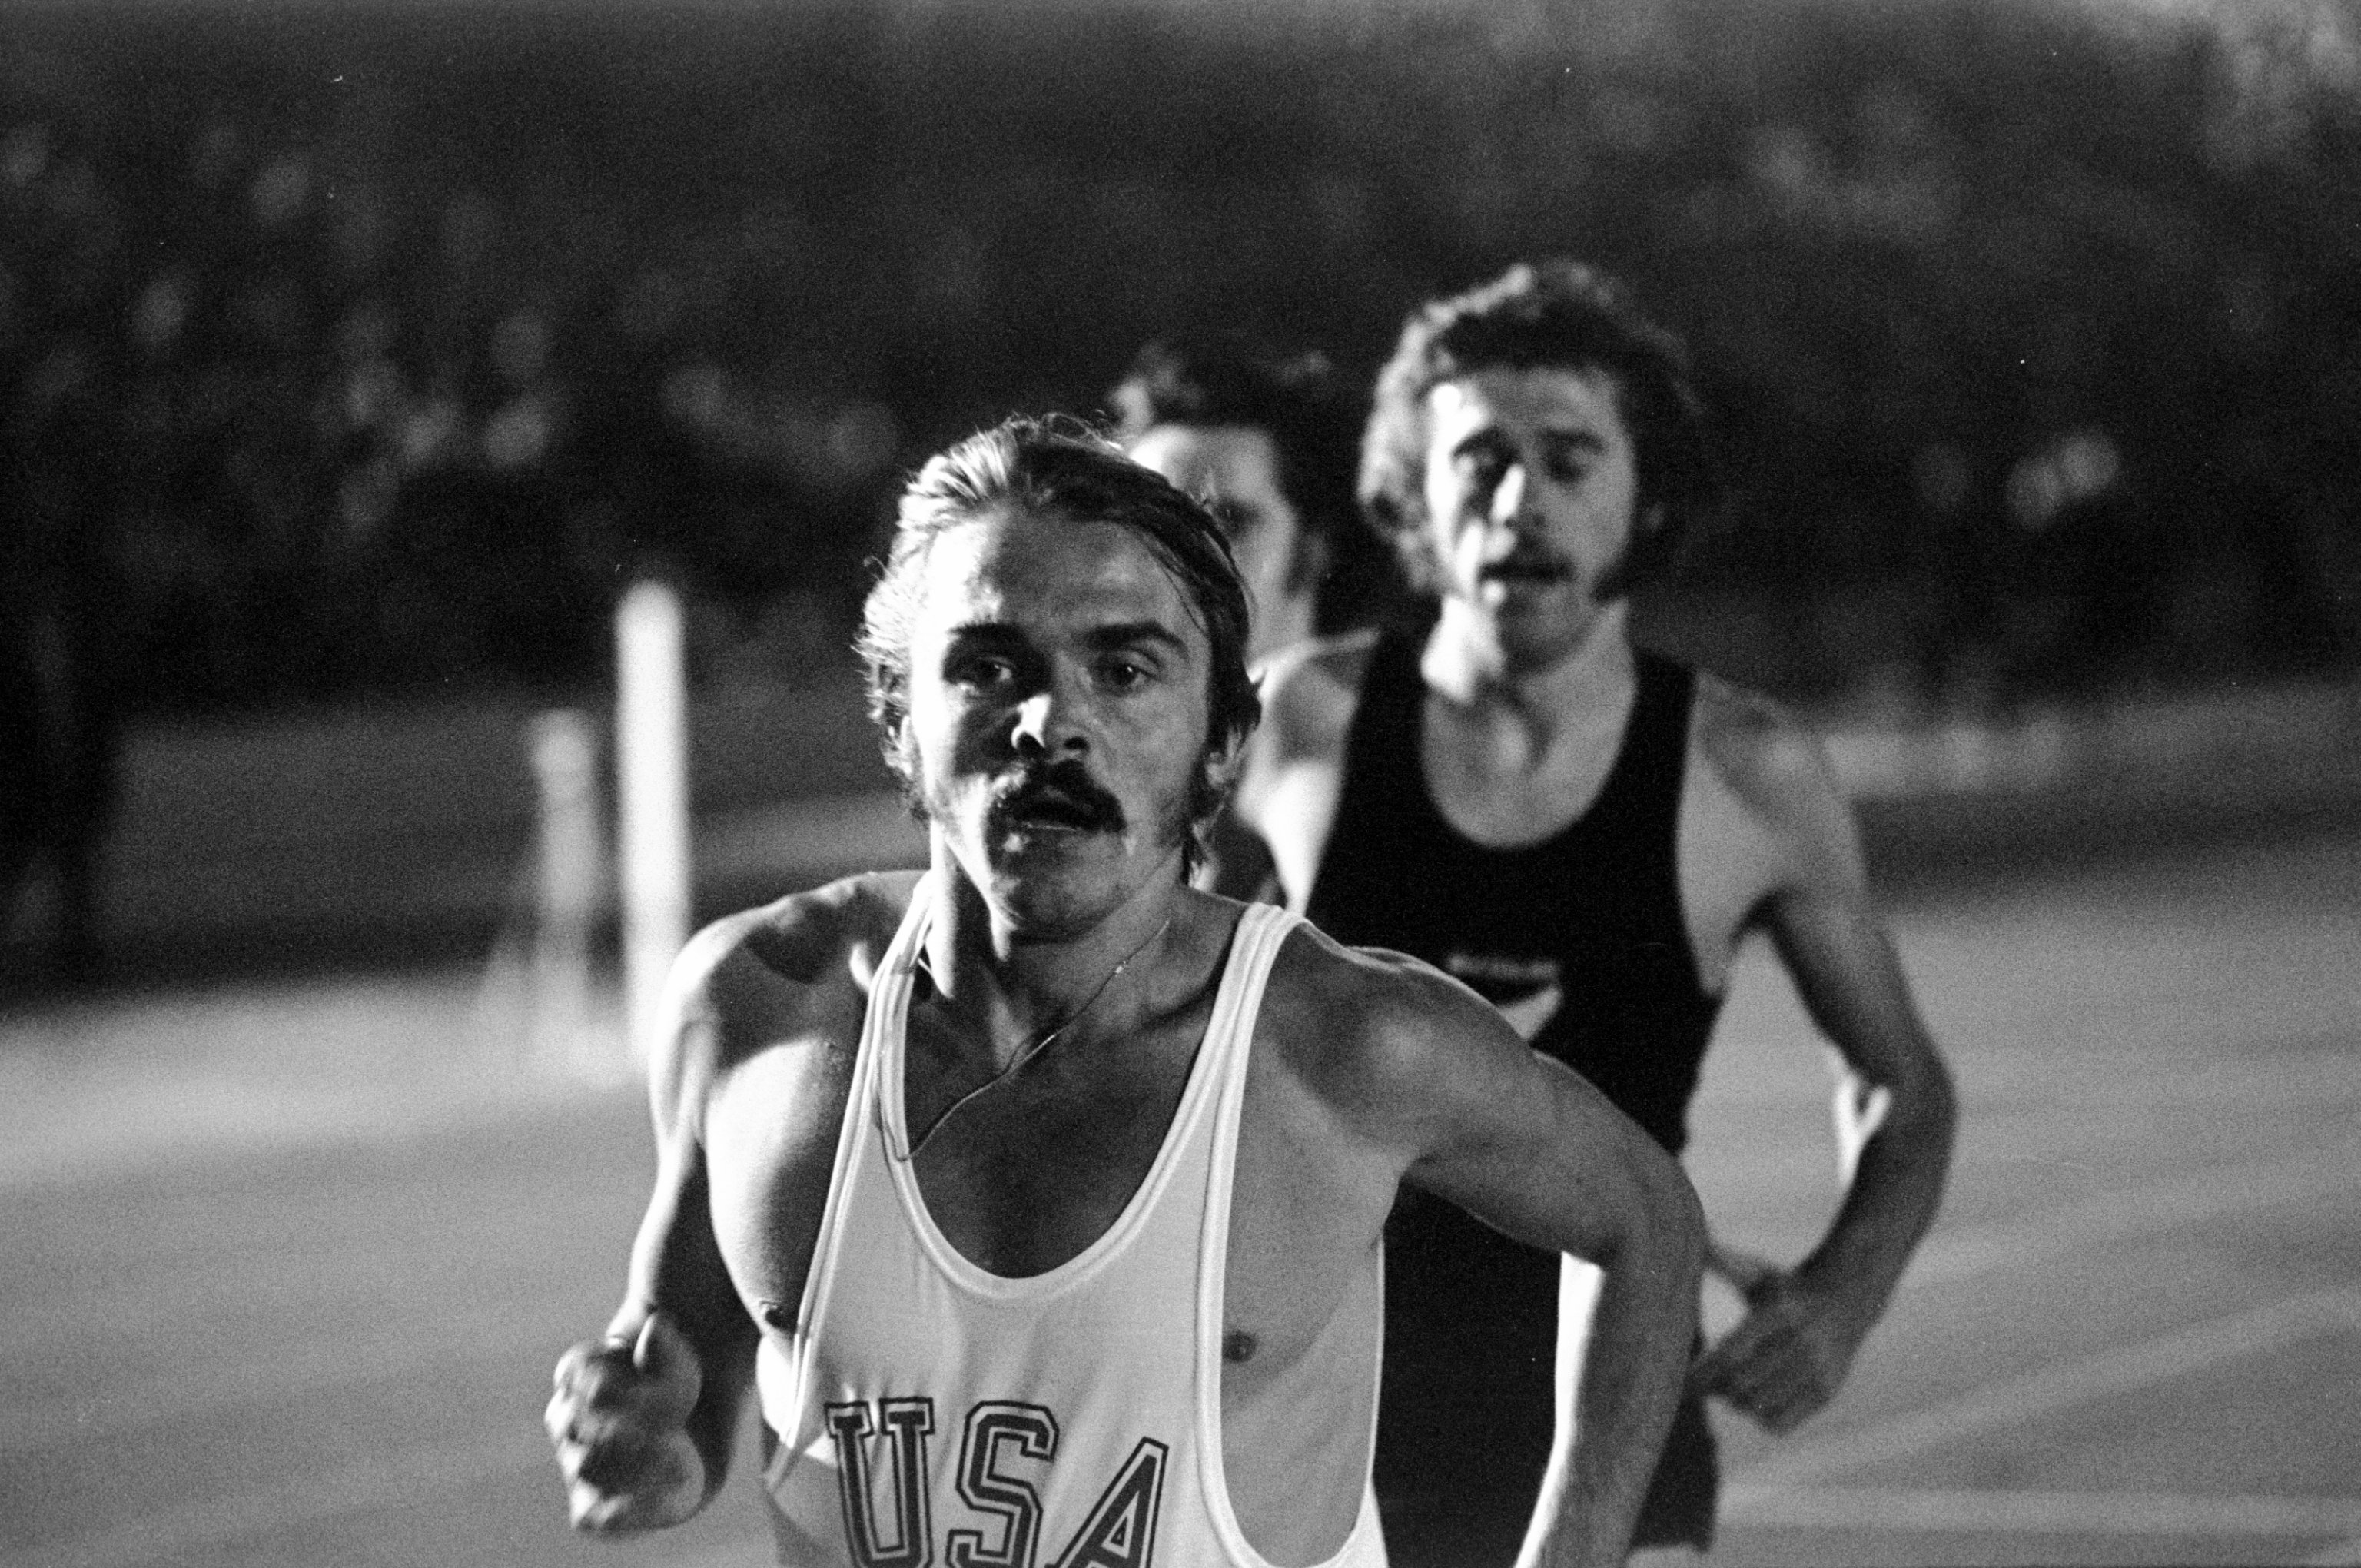 the life of steve roland prefontaine an american middle and long distance runner